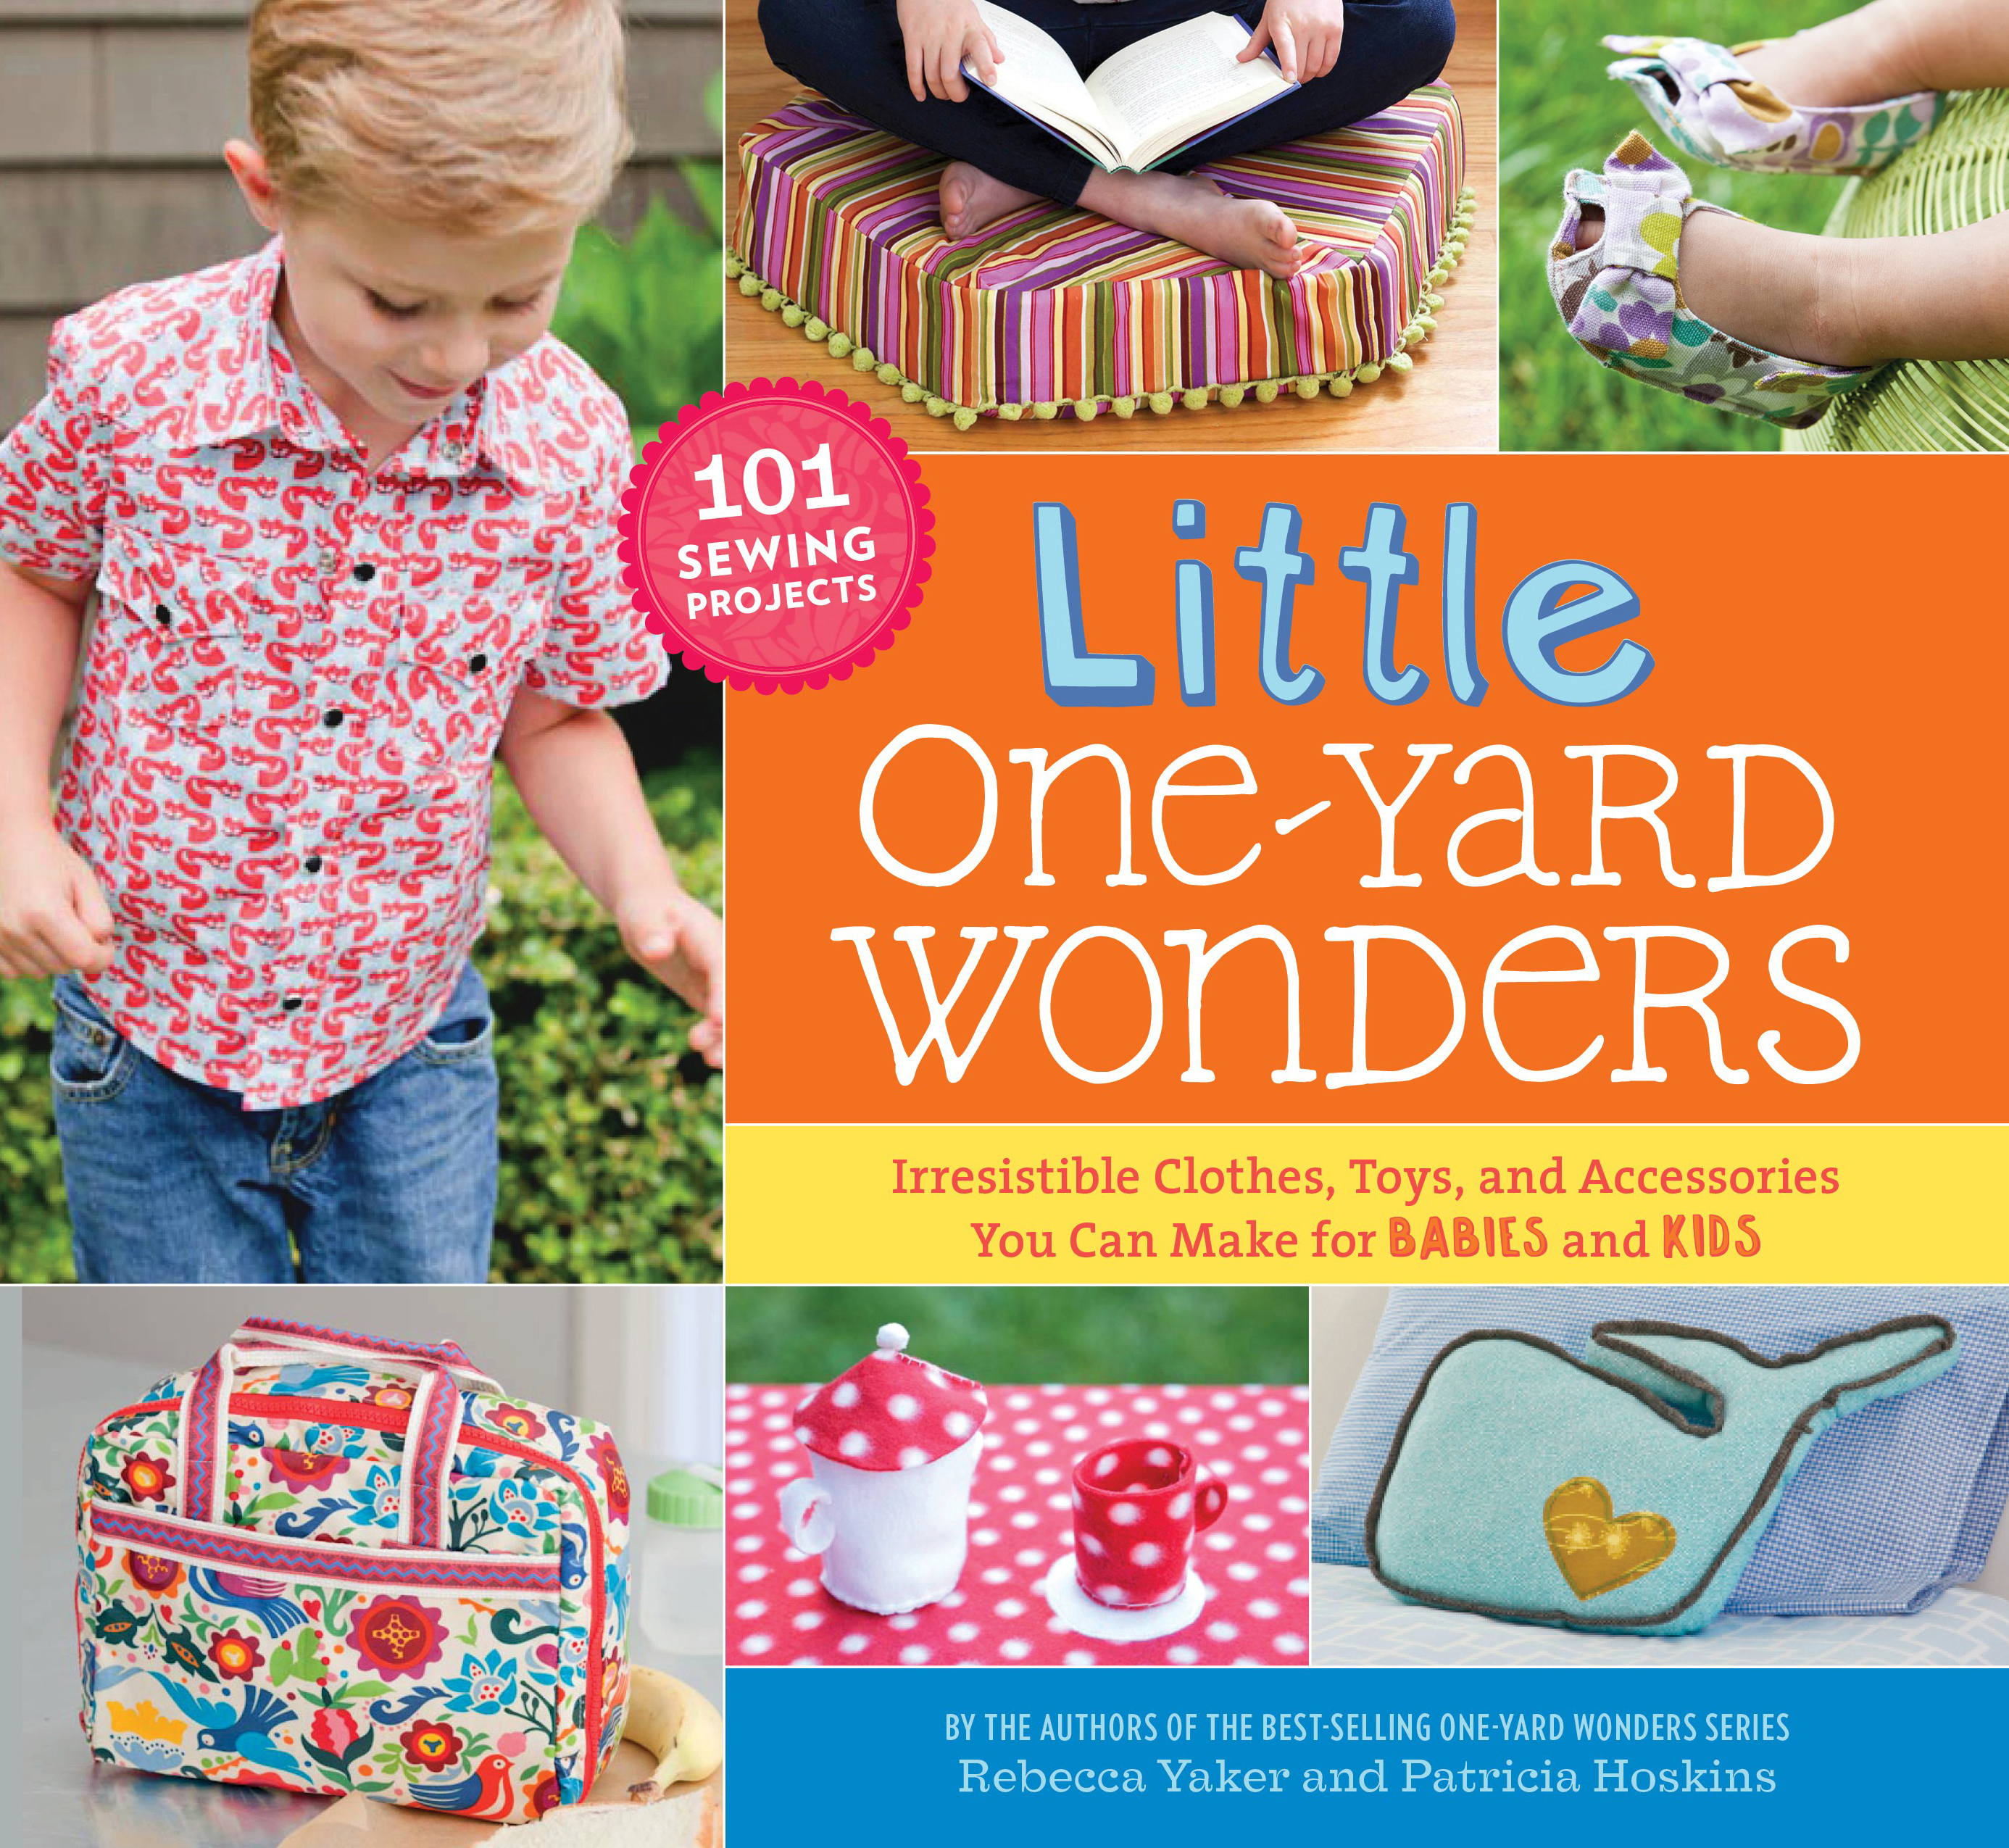 Little One-Yard Wonders Irresistible Clothes, Toys, and Accessories You Can Make for Babies and Kids - Patricia Hoskins